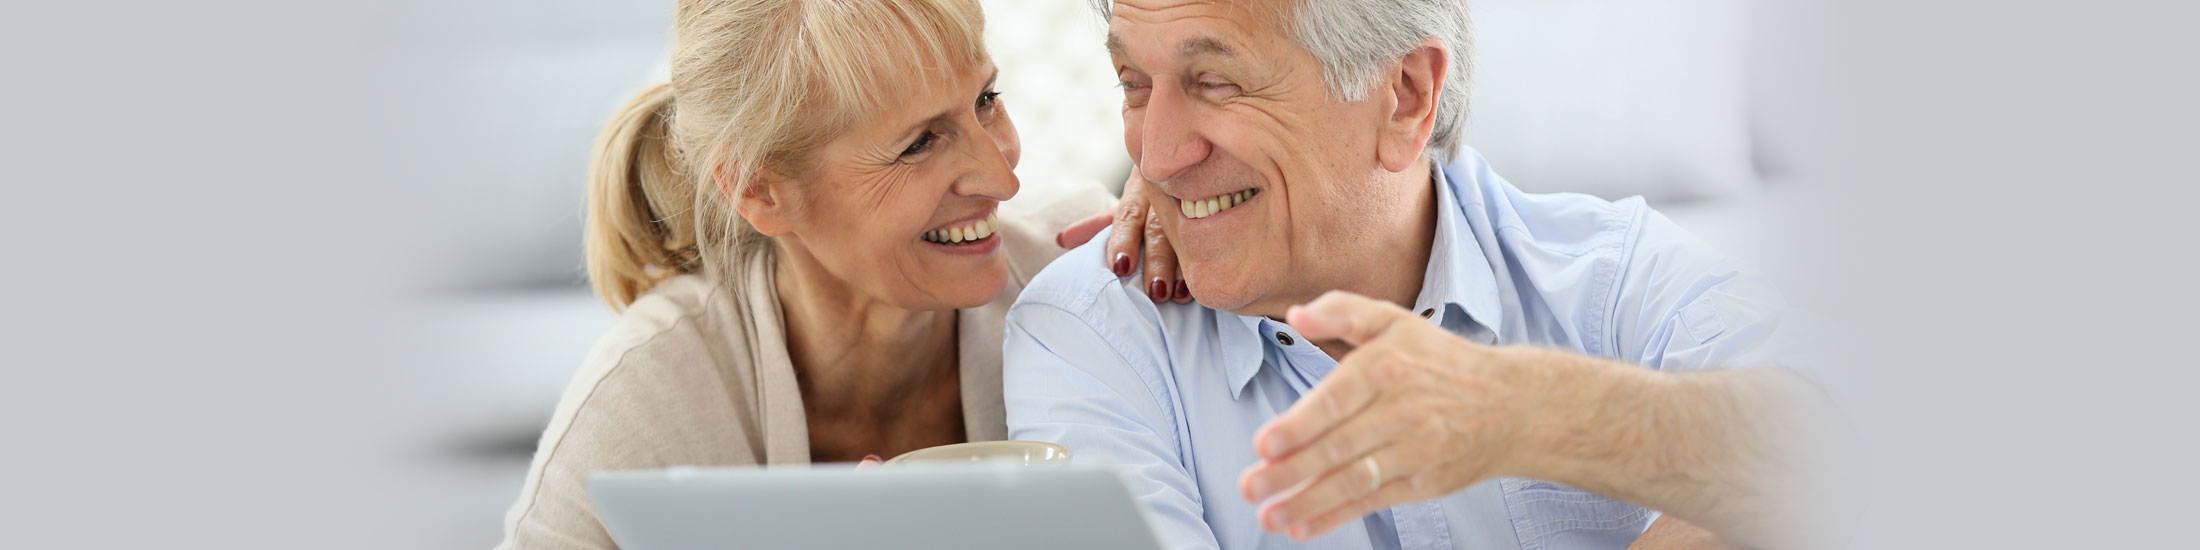 Covid-19 Concerns Turn More Older Users to Digital Payments